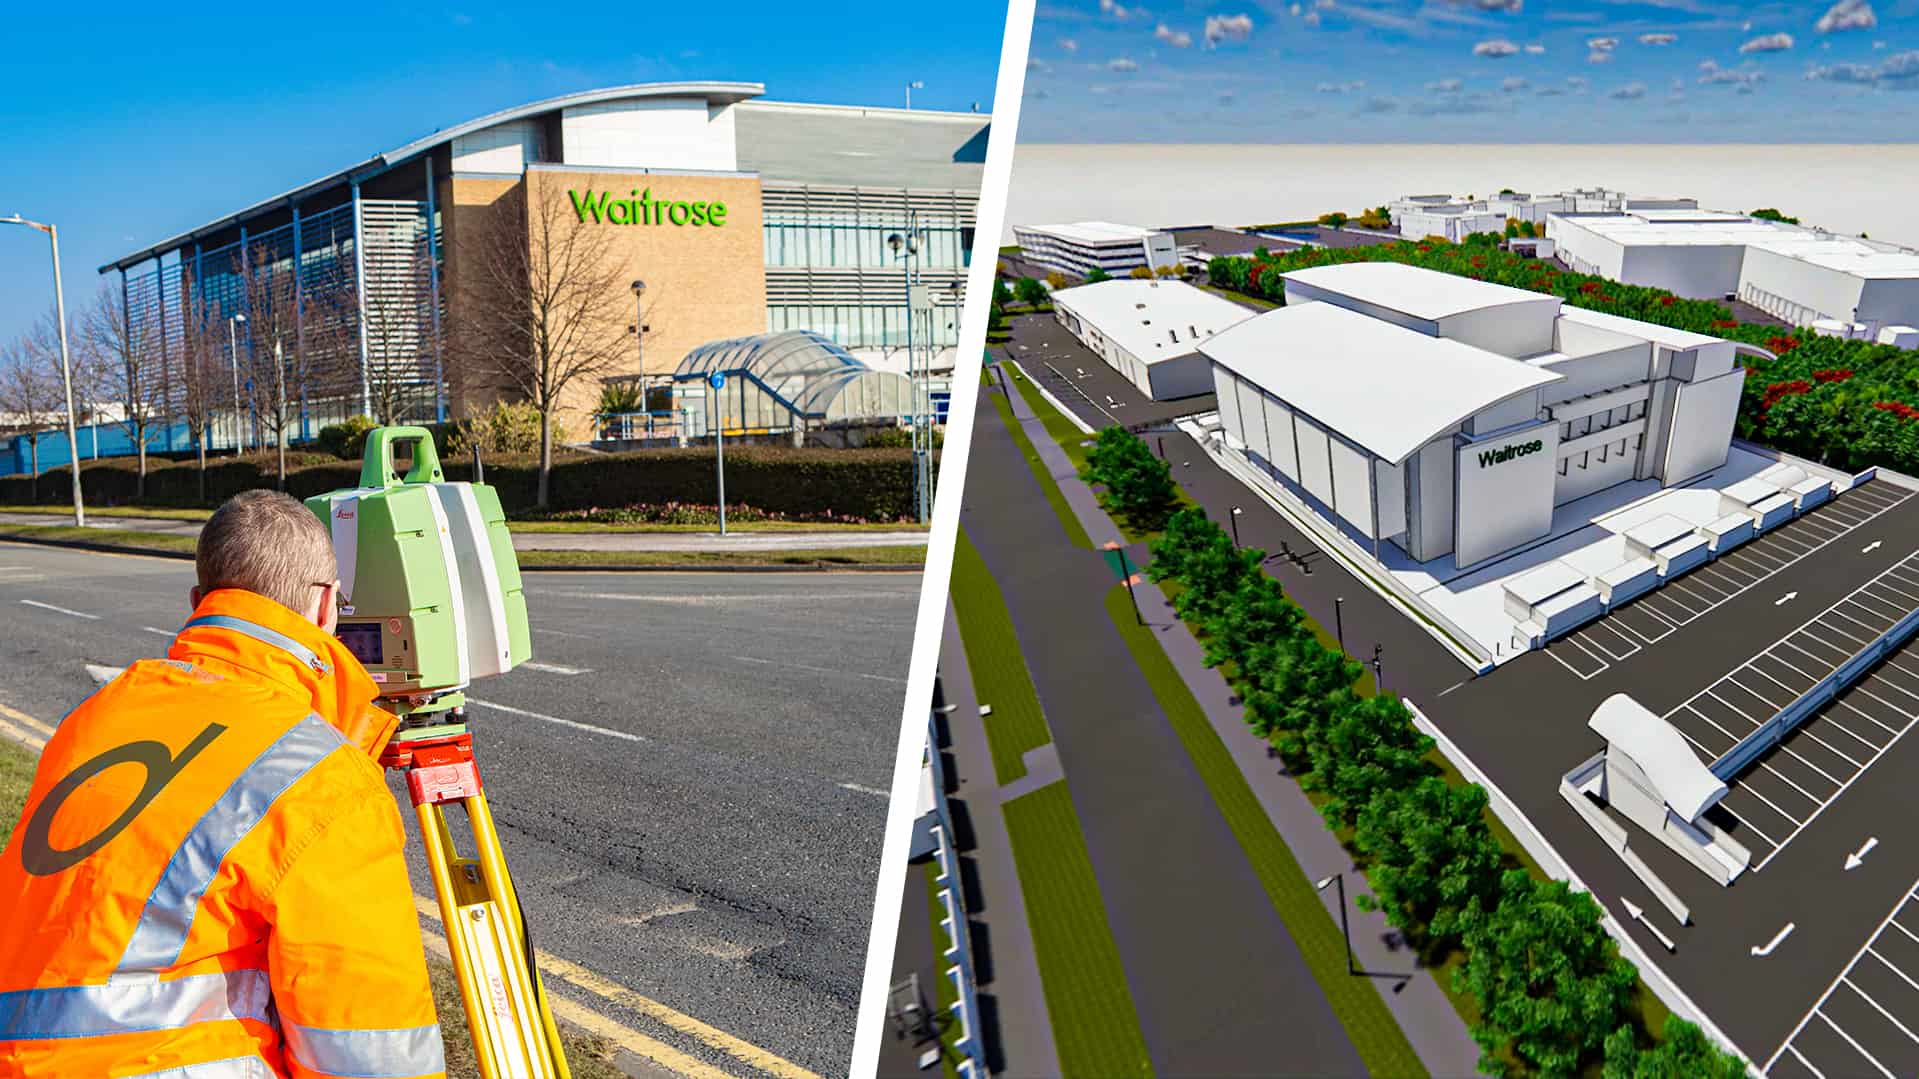 Waitrose building and surveyor scanning the site, plus BIM model of the same building